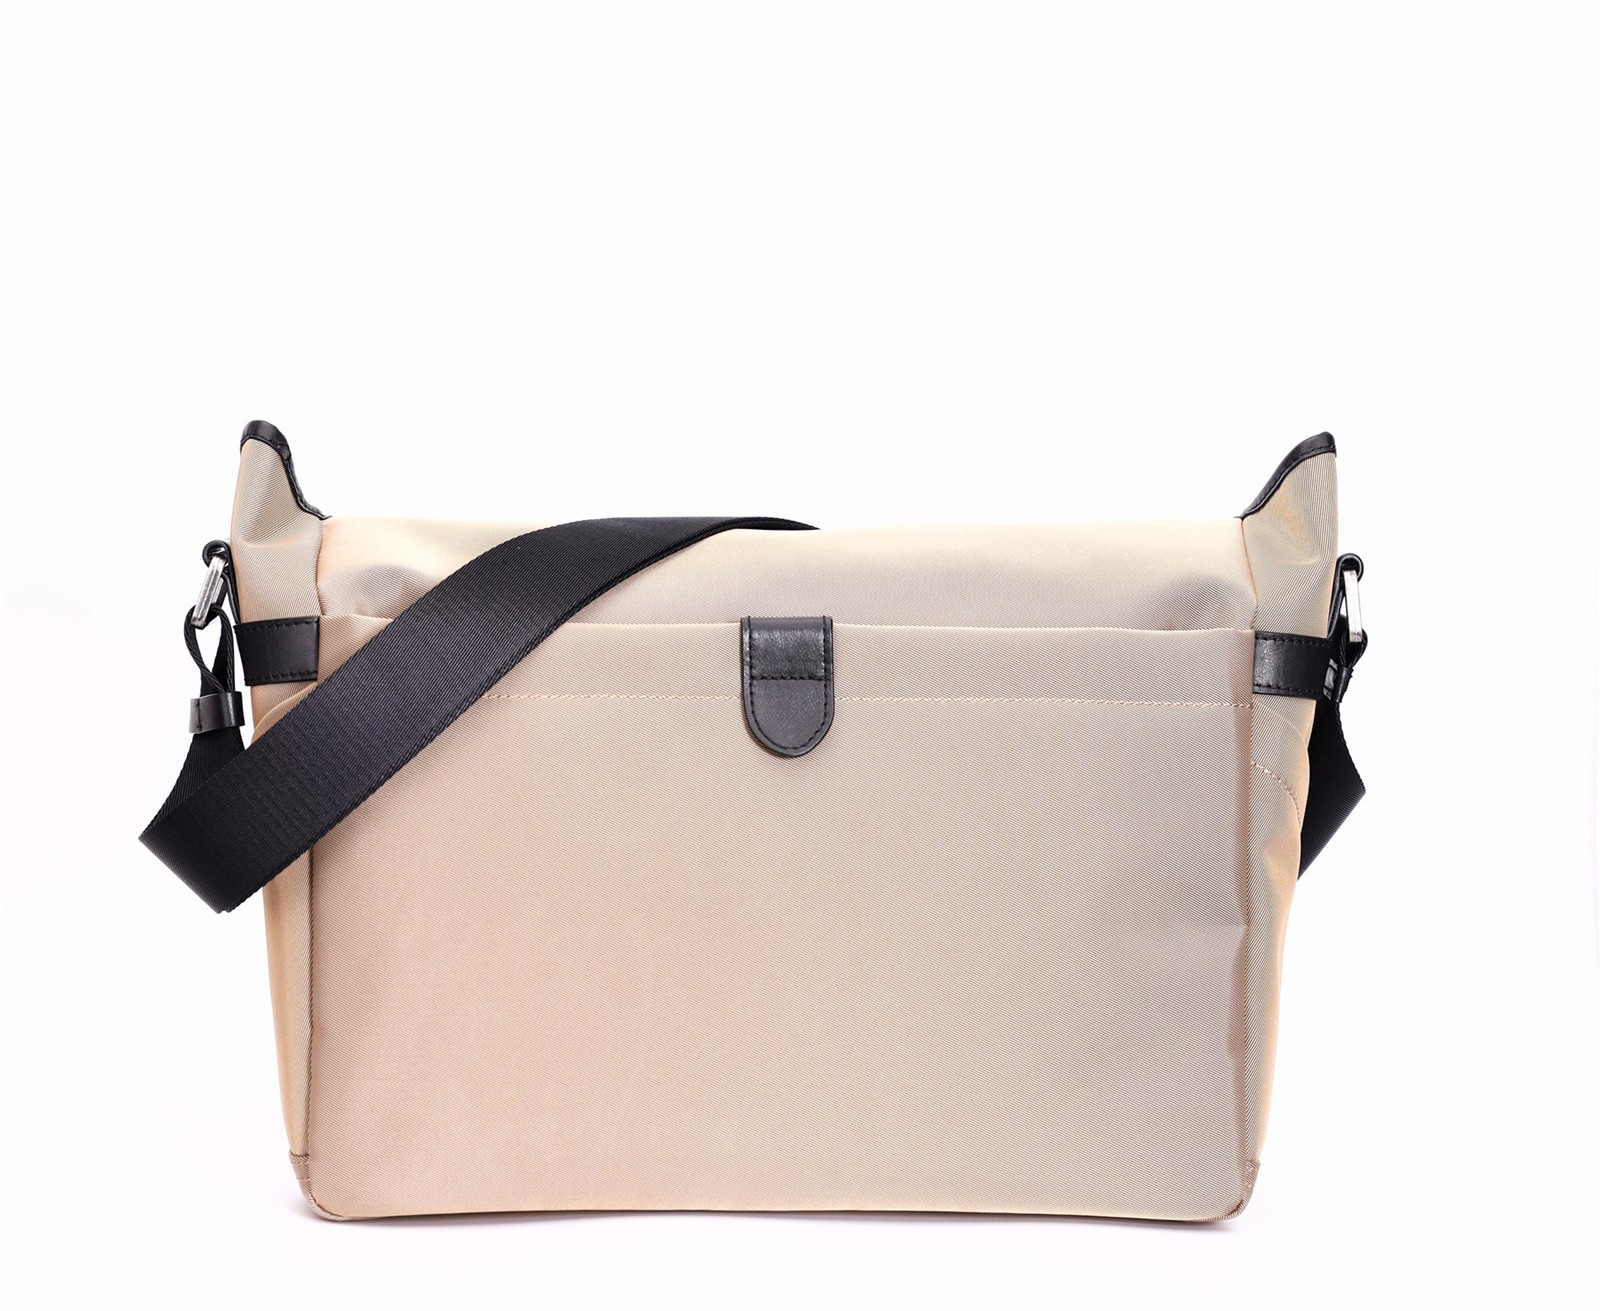 GF bags-Best Leather Messenger Bag Supplier, Mens Fashion Messenger Bag | Gf Bags-5